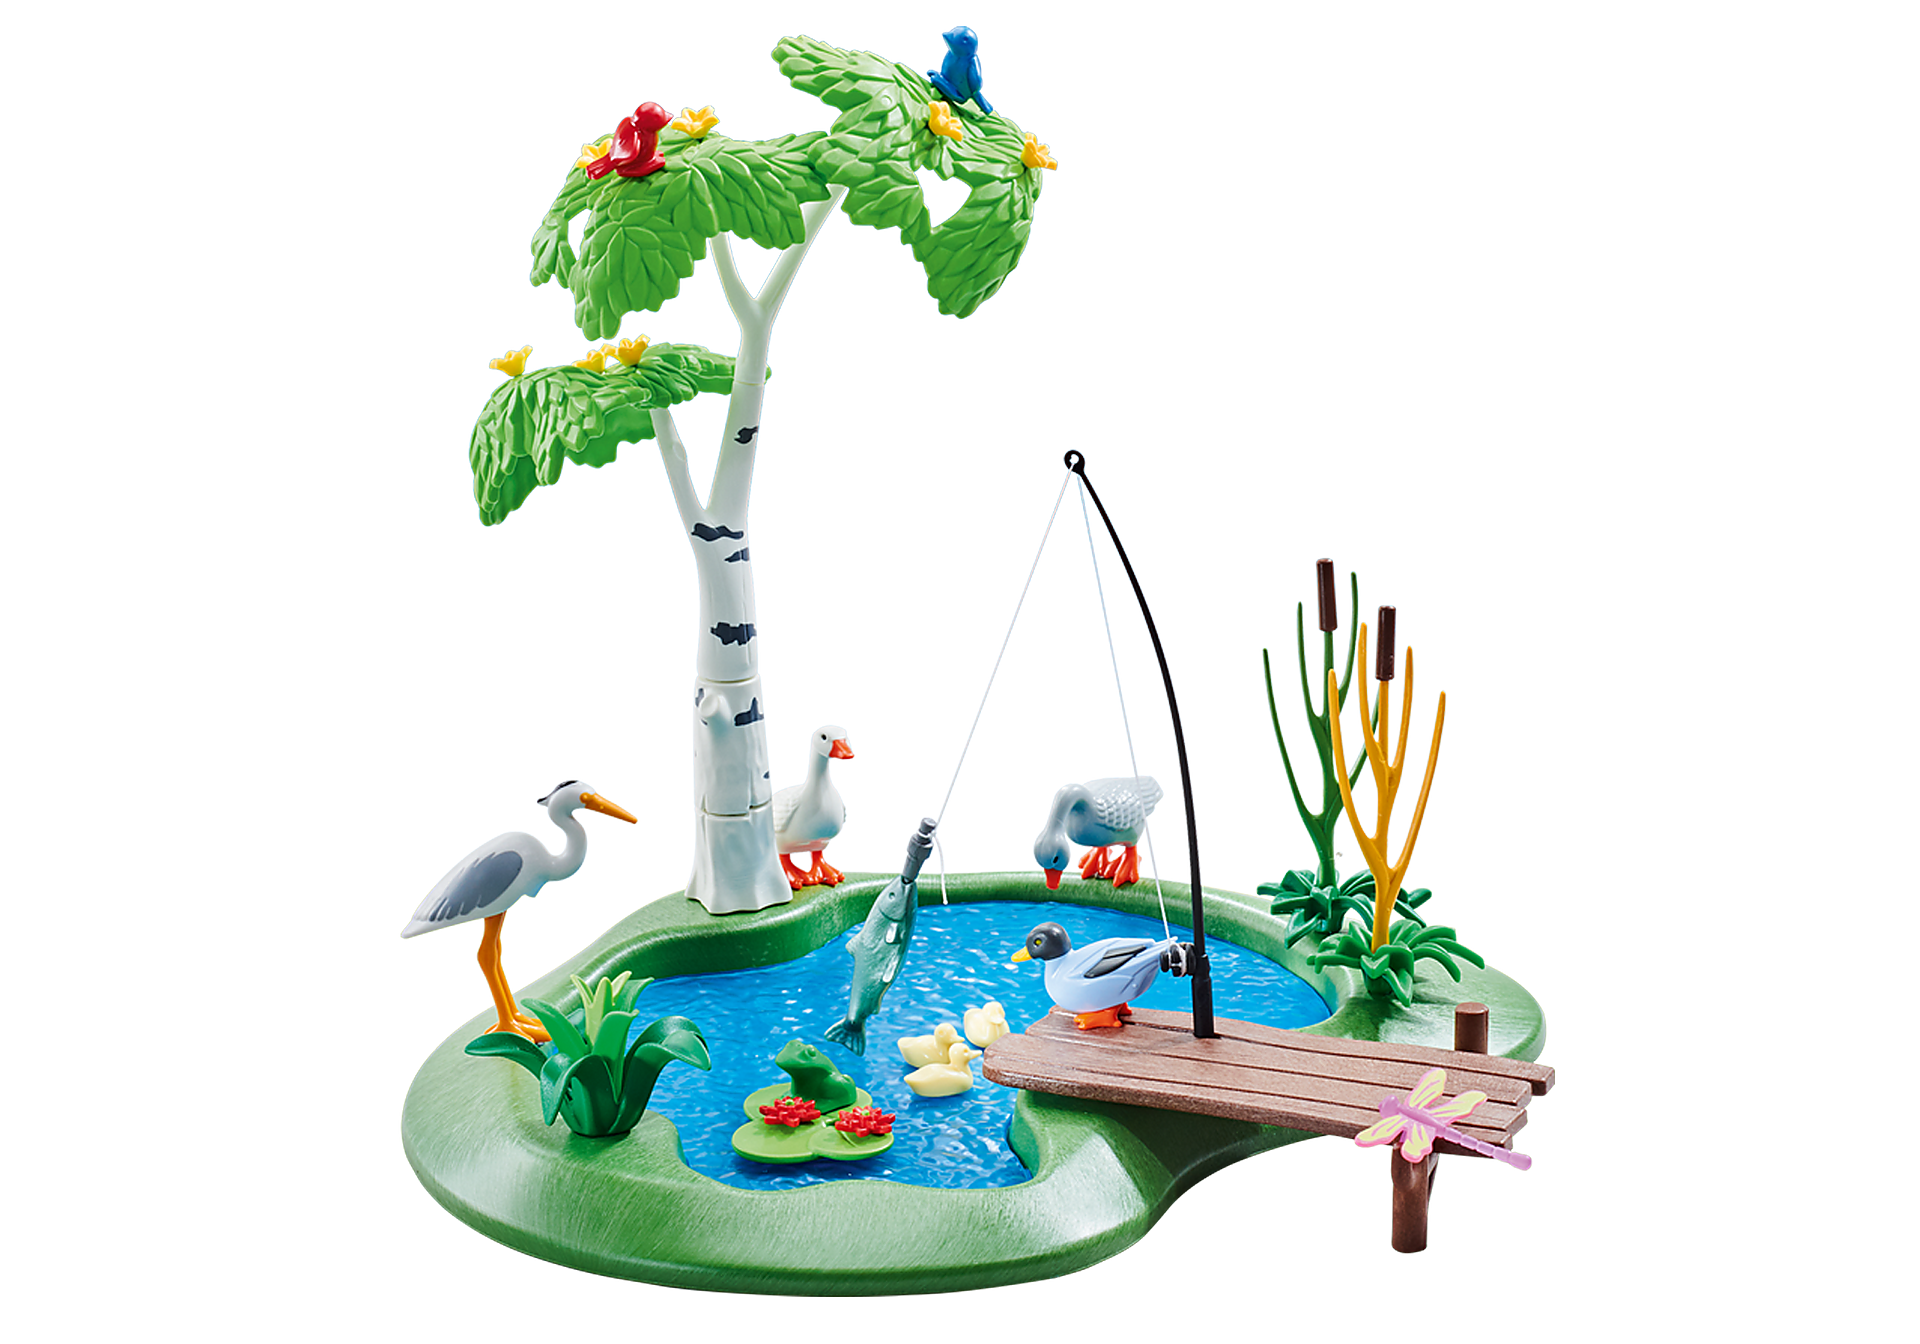 http://media.playmobil.com/i/playmobil/6574_product_detail/Λιμνούλα για ψάρεμα